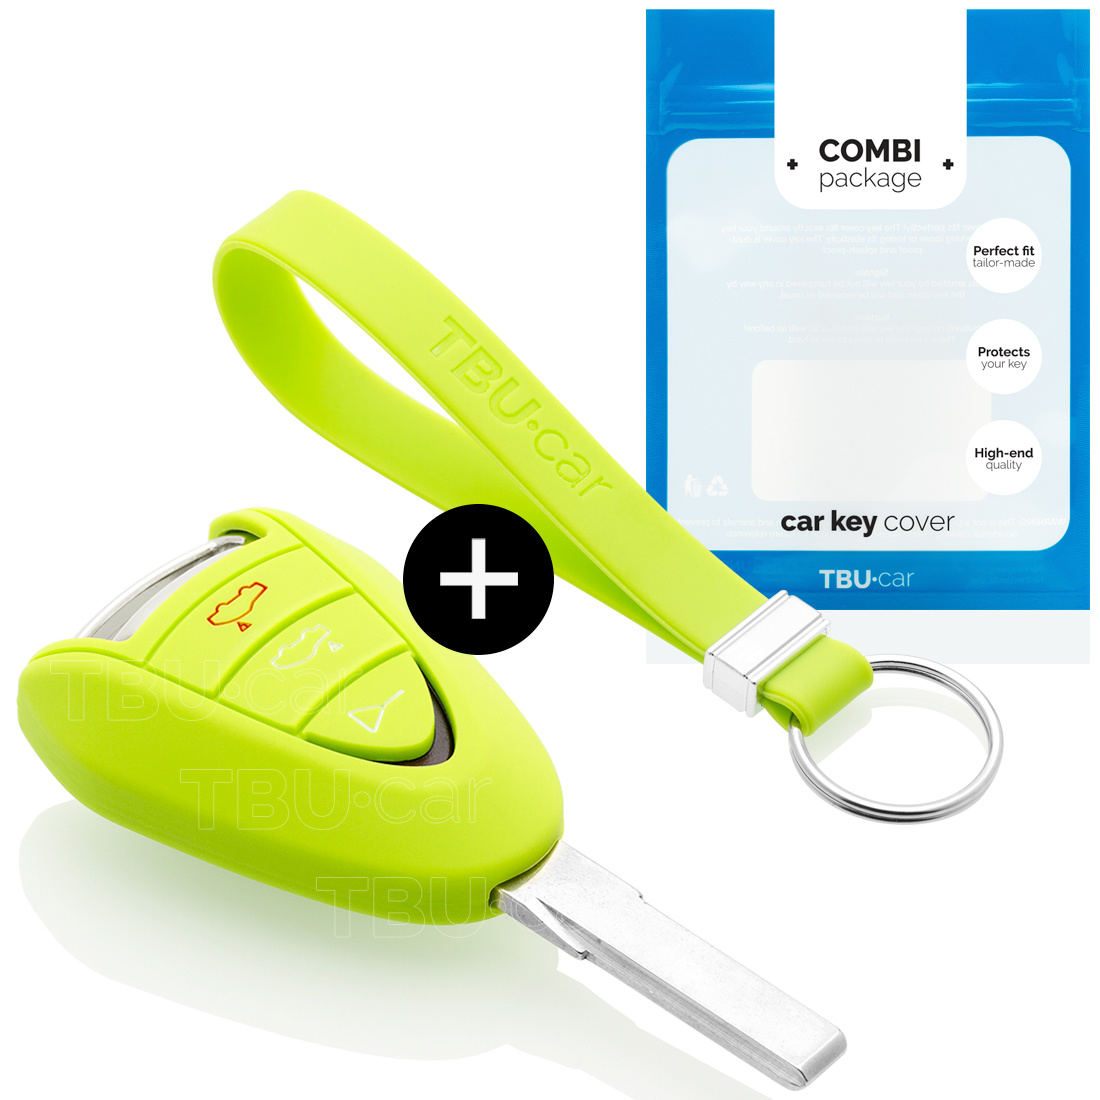 Porsche Car key cover - Silicone Protective Remote Key Shell - FOB Case Cover - Lime